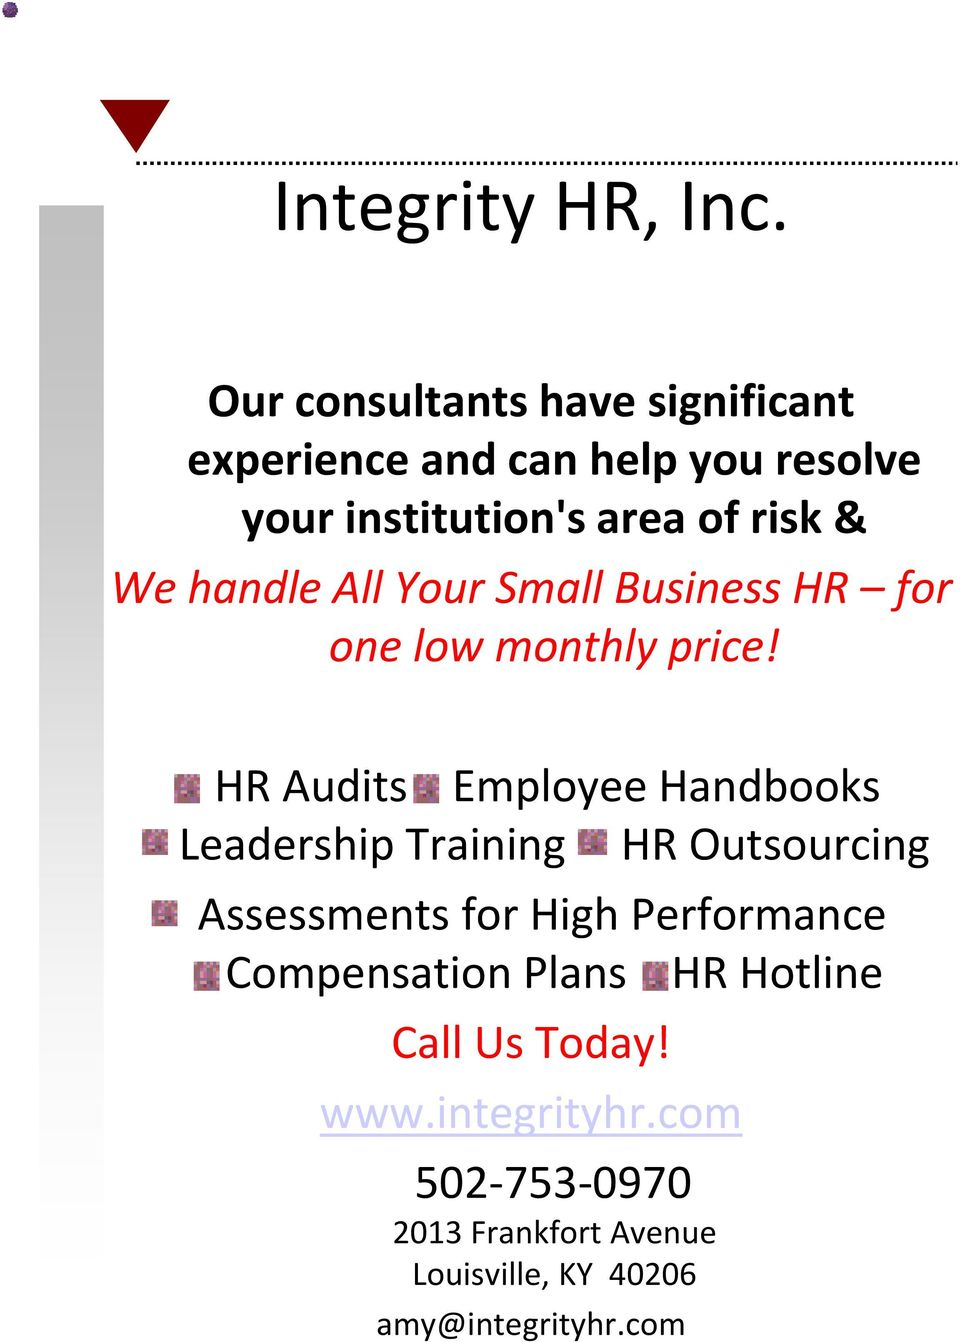 handle All Your Small Business HR for one low monthly price!